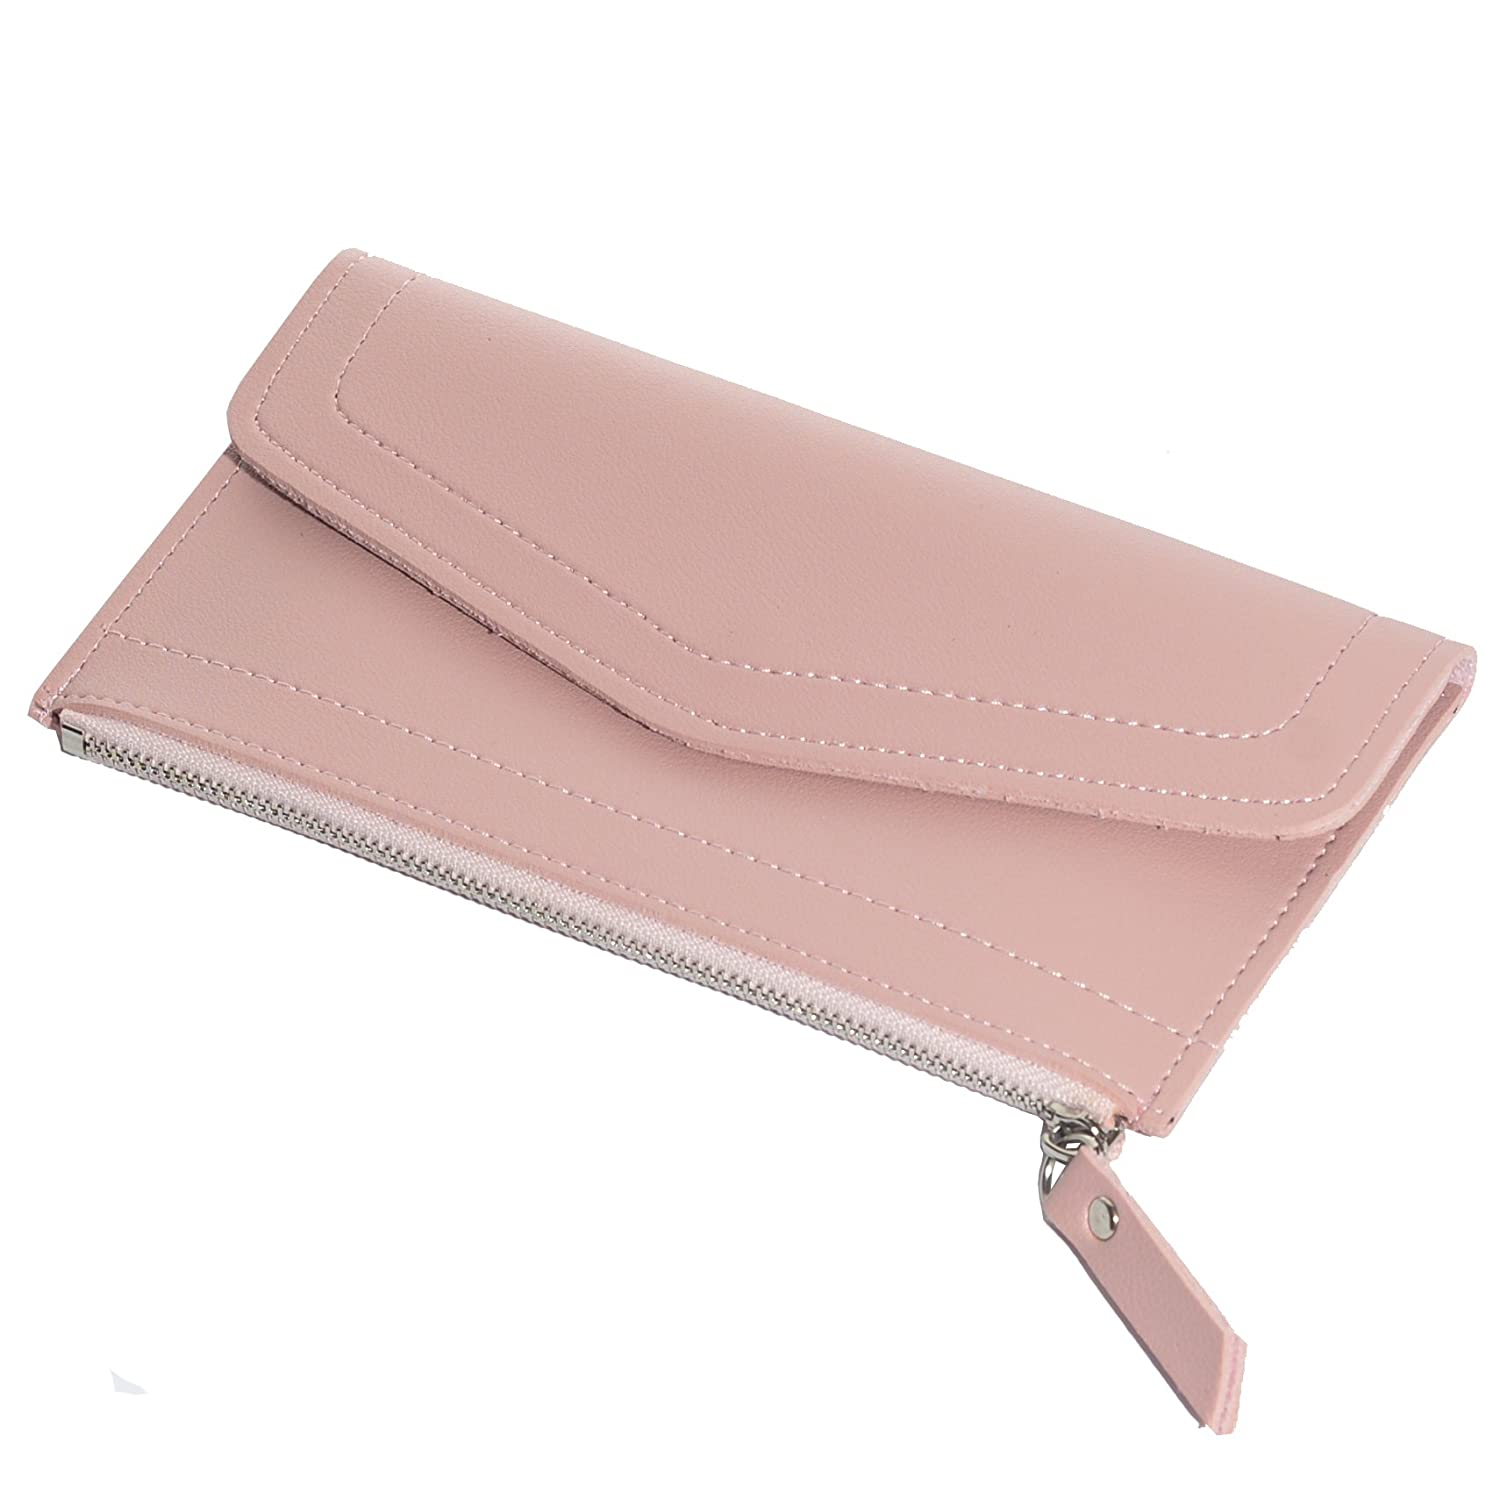 90b28a722bf6 CKLT Women's Long Soft PU Leather Zipper Ultra-Thin Purse Wallet  Ladies&Girls (pink)